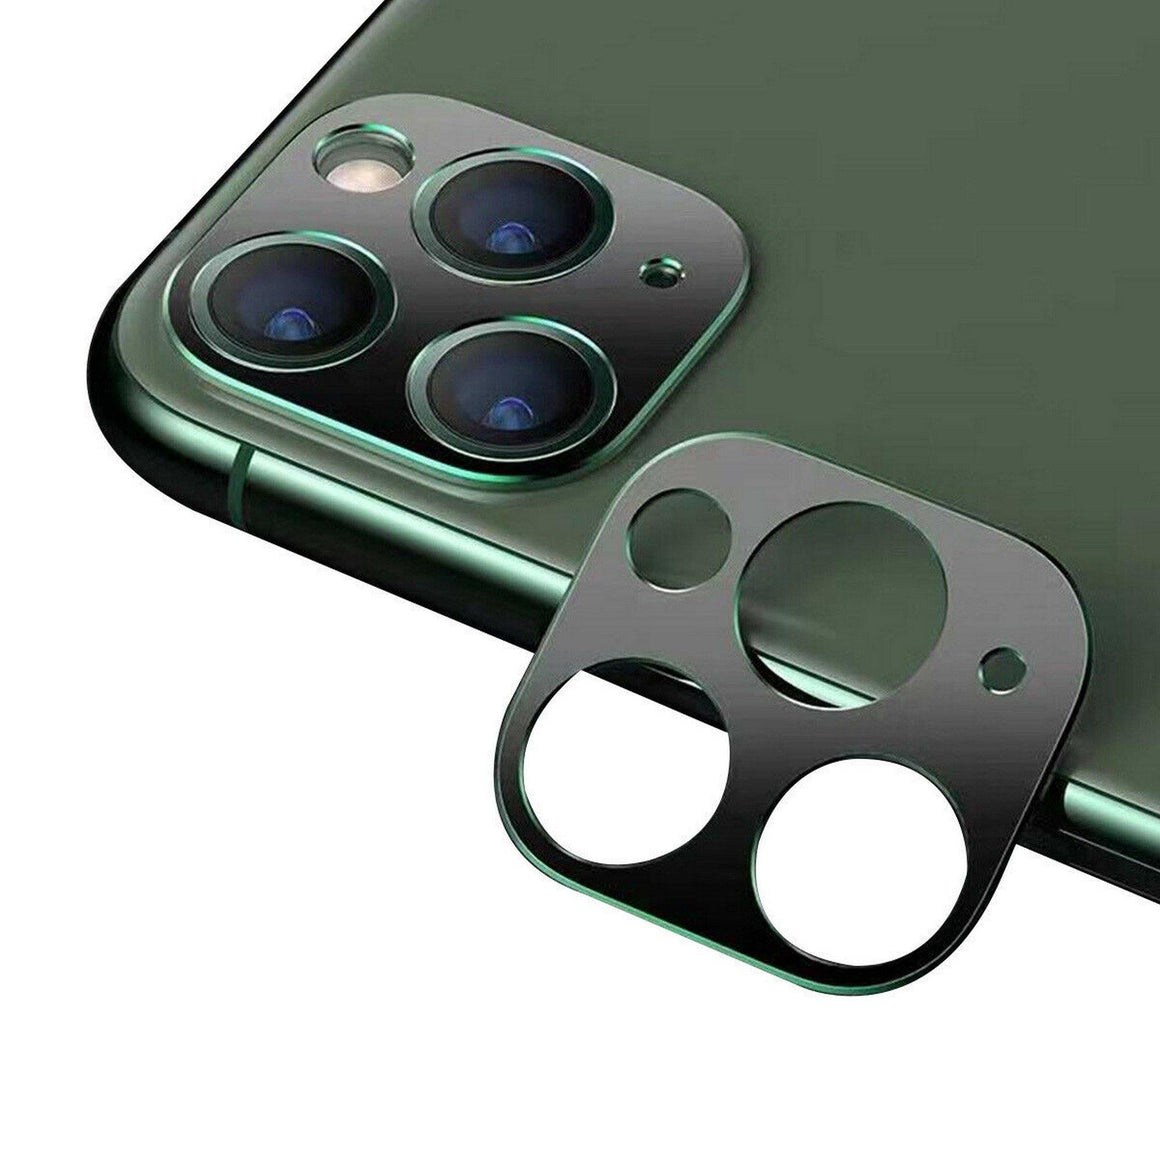 Camera Lens For iPhone 11 Pro Max 6.5""